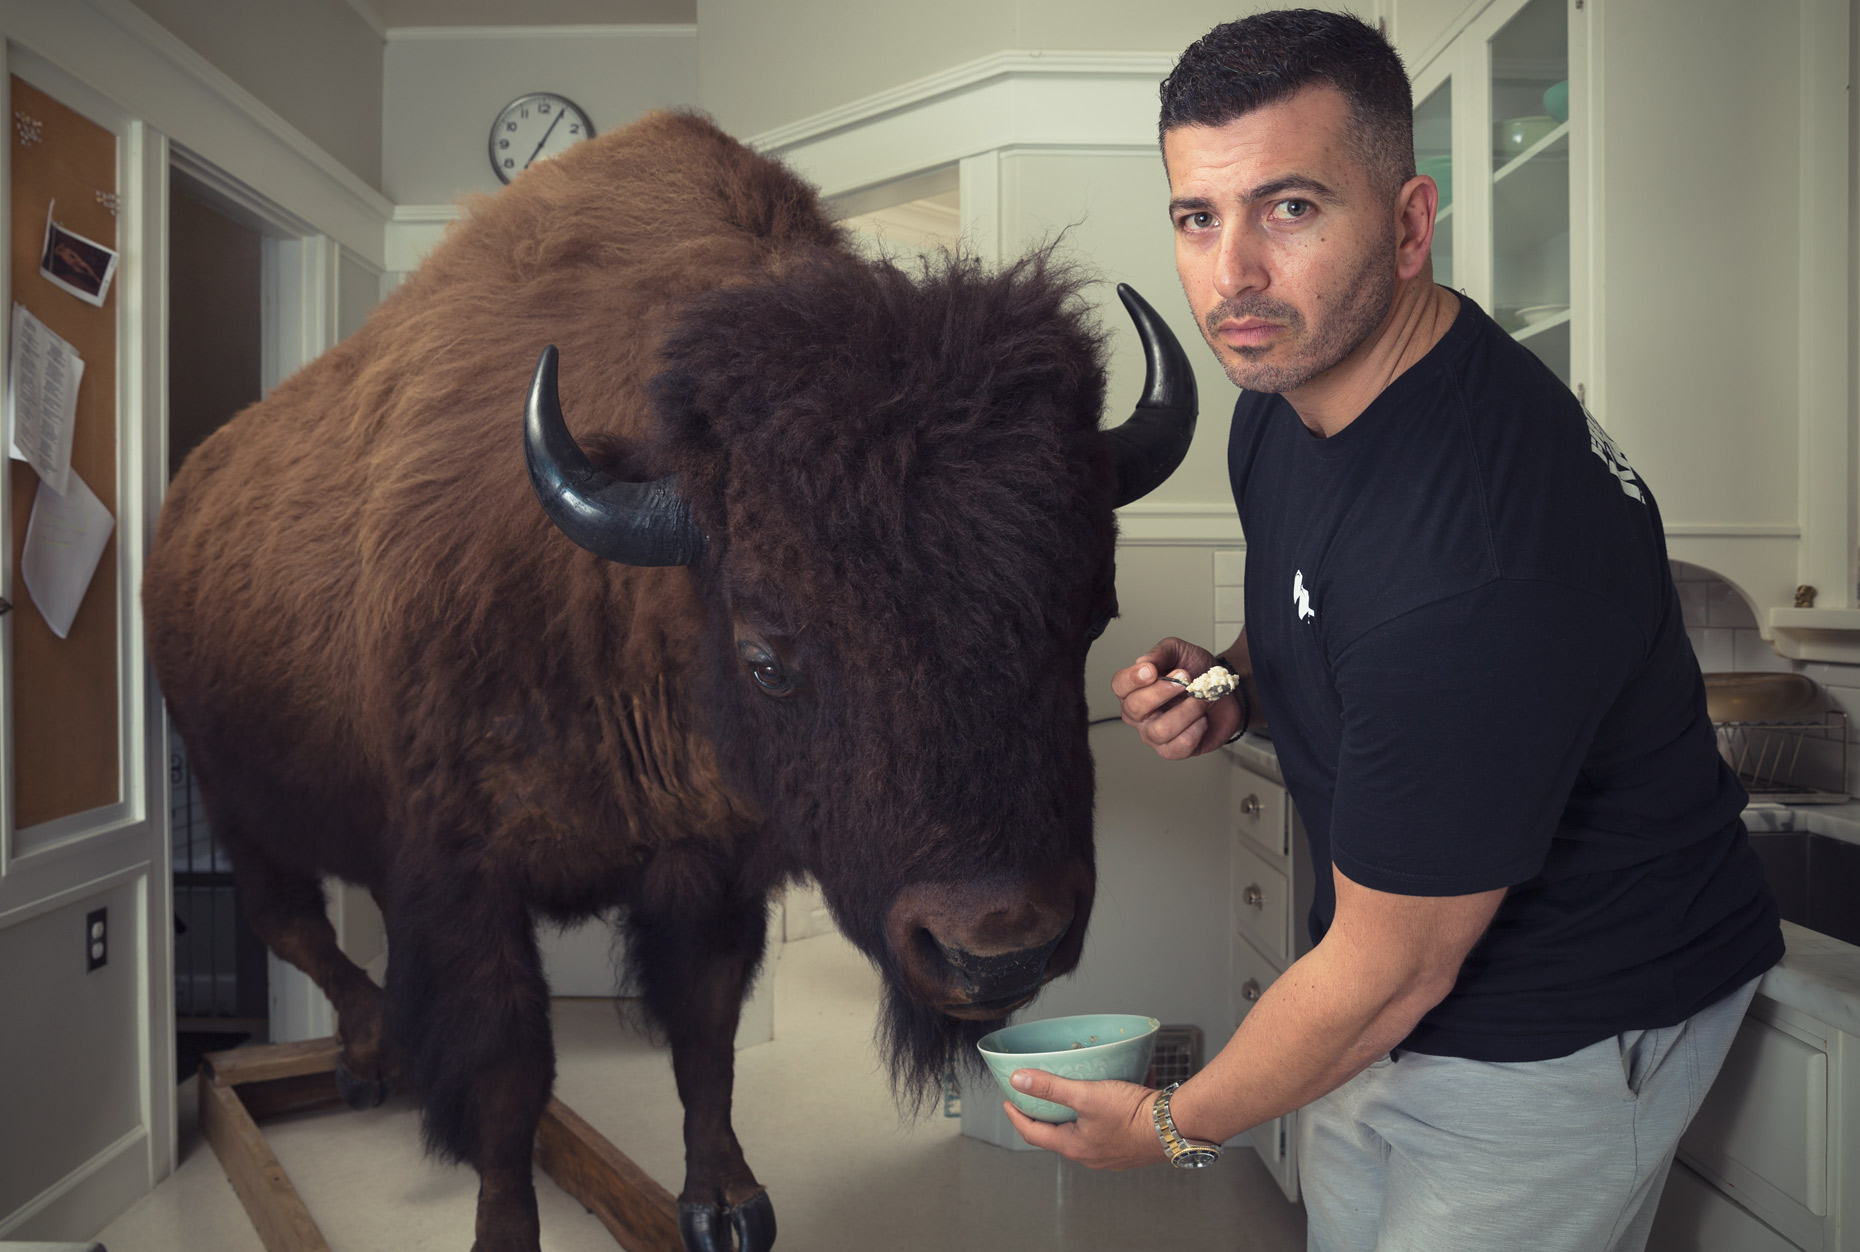 Commercial photography Portland, Oregon - man feeding a buffalo in a kitchen.